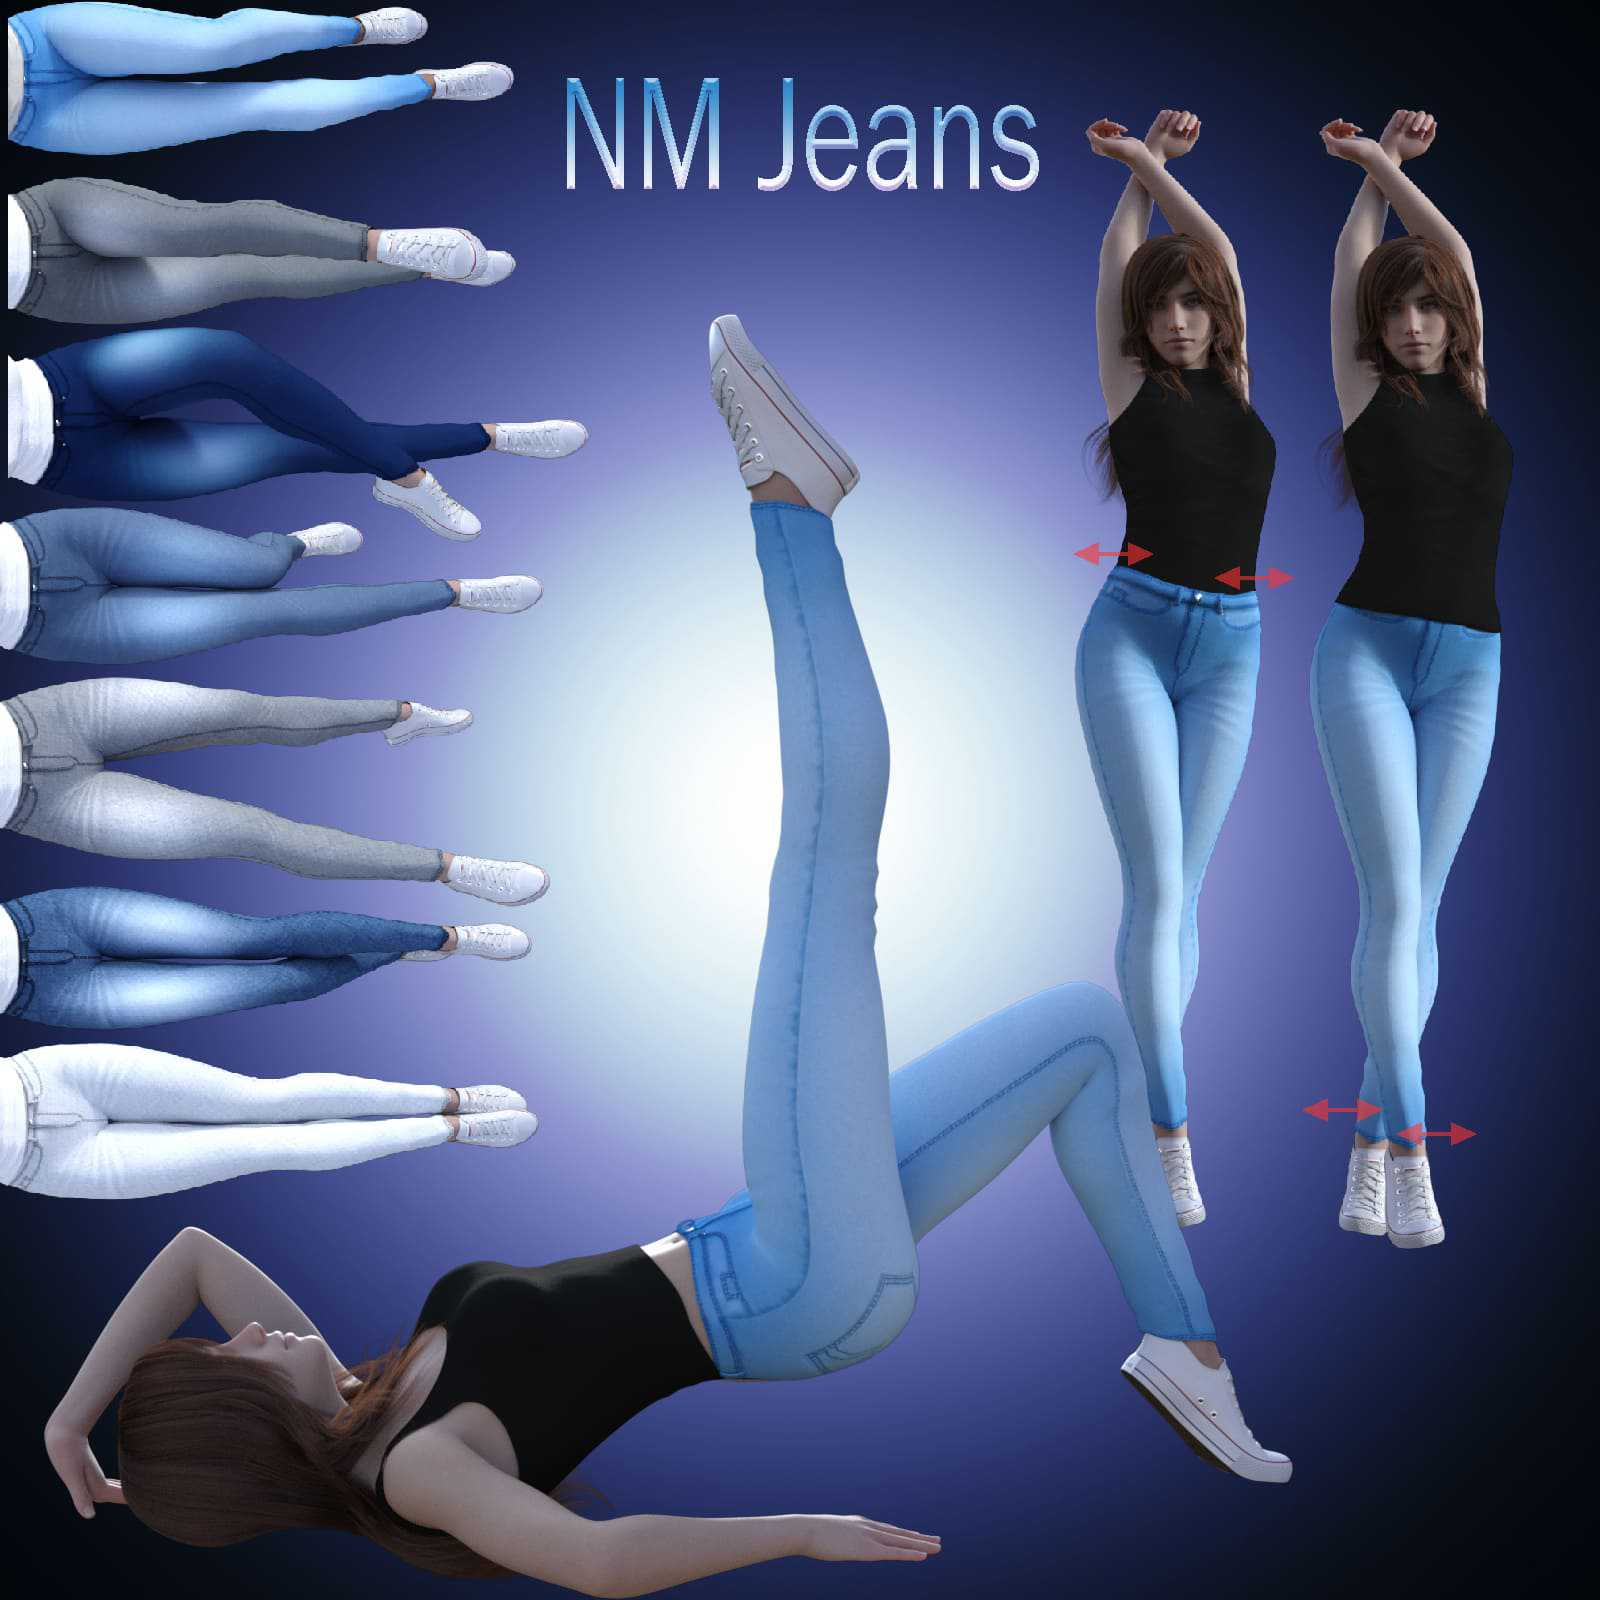 NM Jeans